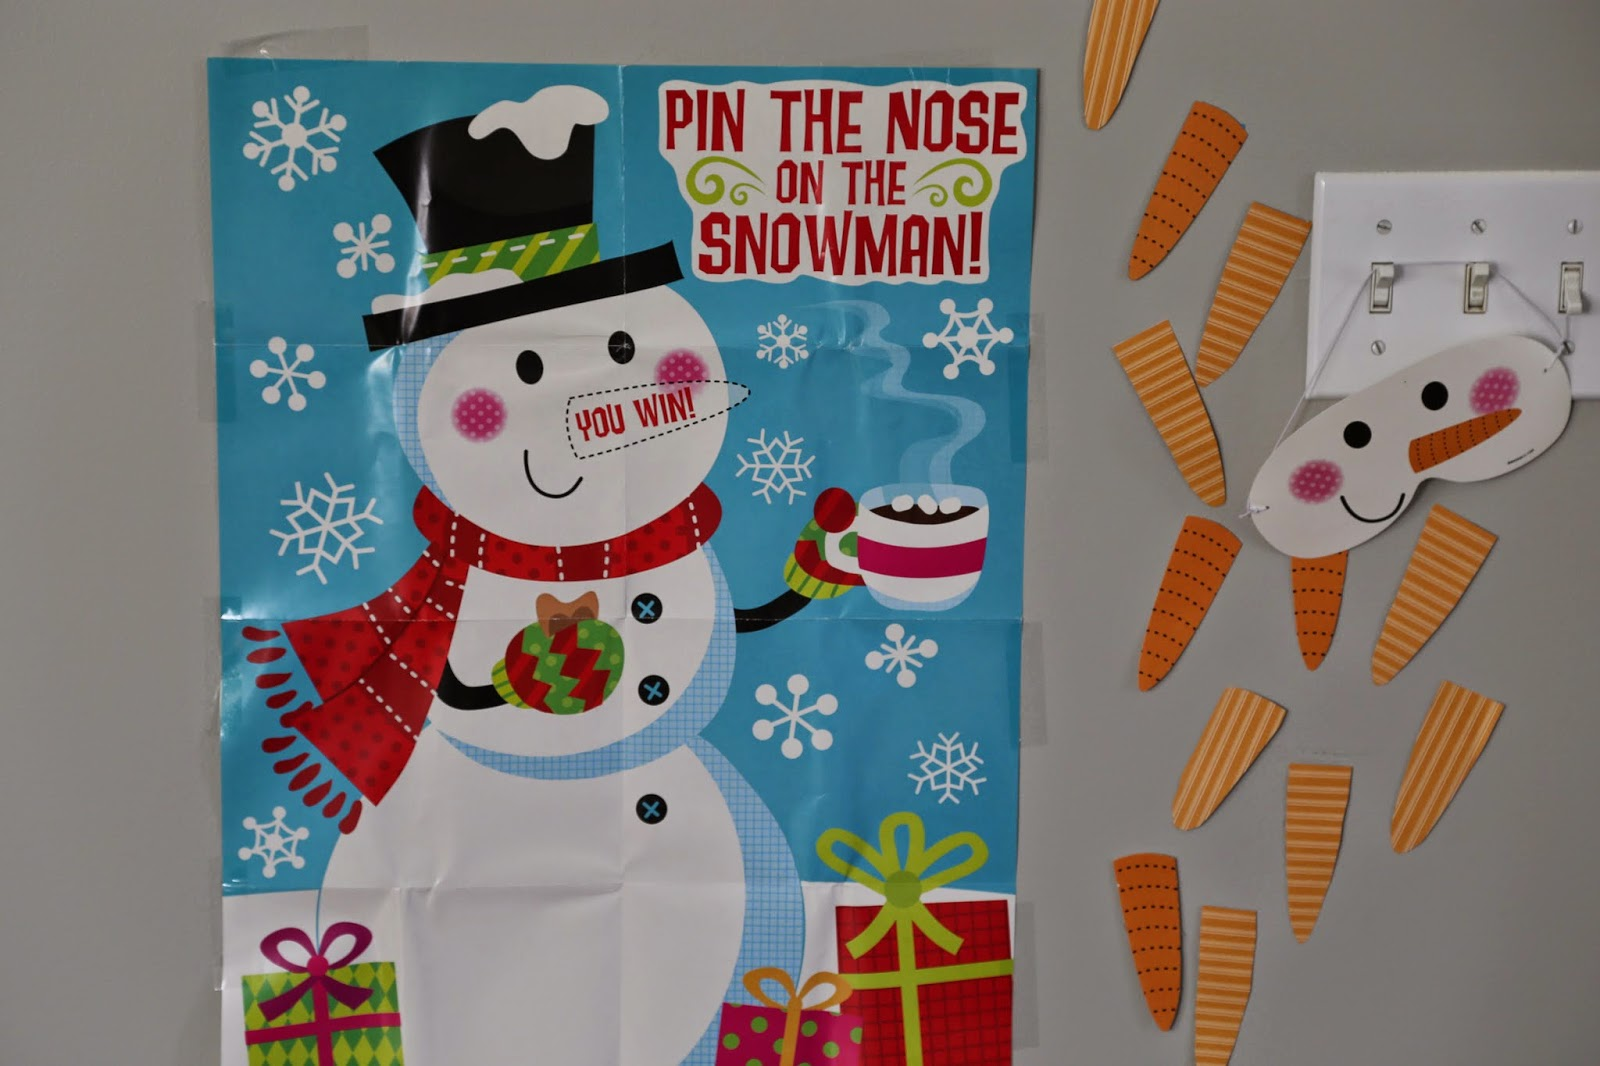 ... draw a snowman on a poster board and cut out carrots from construction